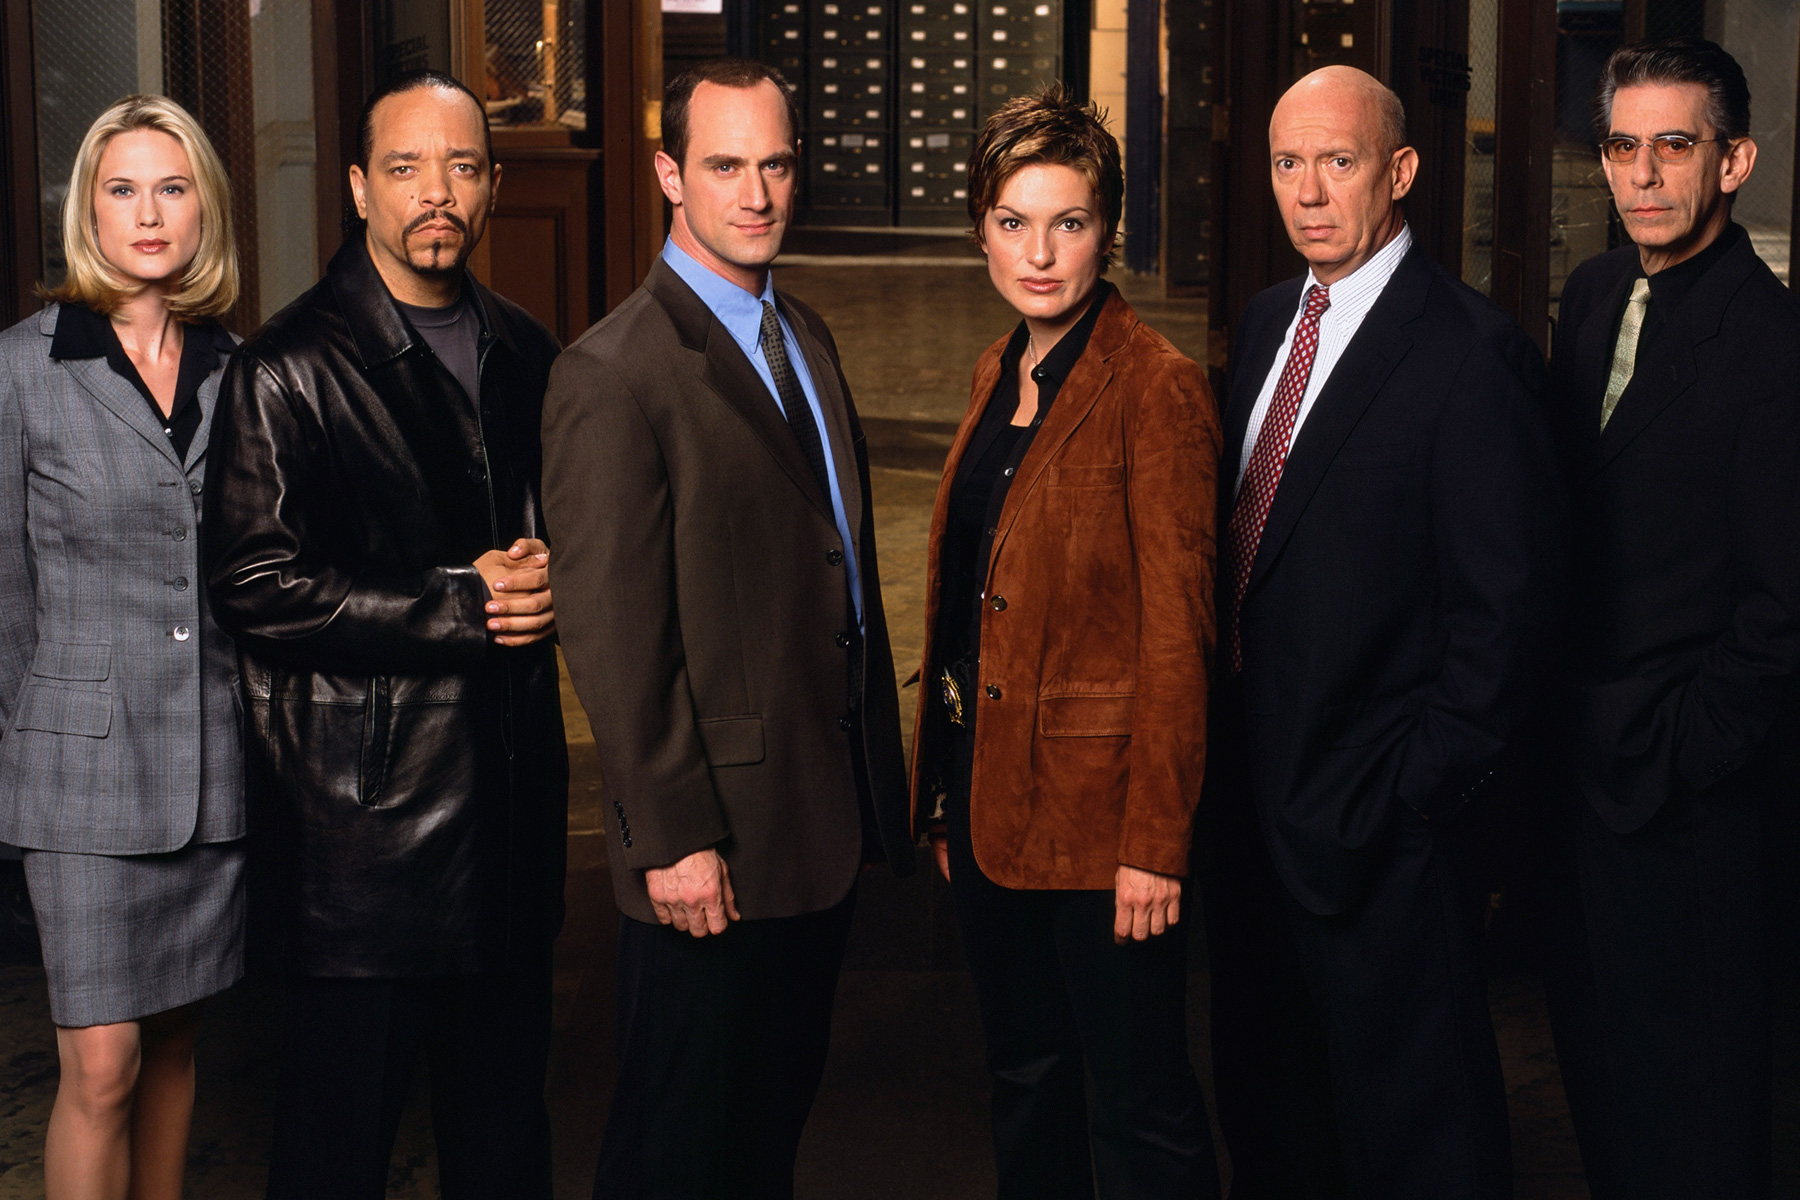 a comparison and a brief summary of the television shows law and order and nypd blue Later, in their short summary on tj hooker, they say cbs picked up the show's final season, which was a marked by grittier plotlines and a location shift to chicago  the changes proved deeply unpopular with fans.